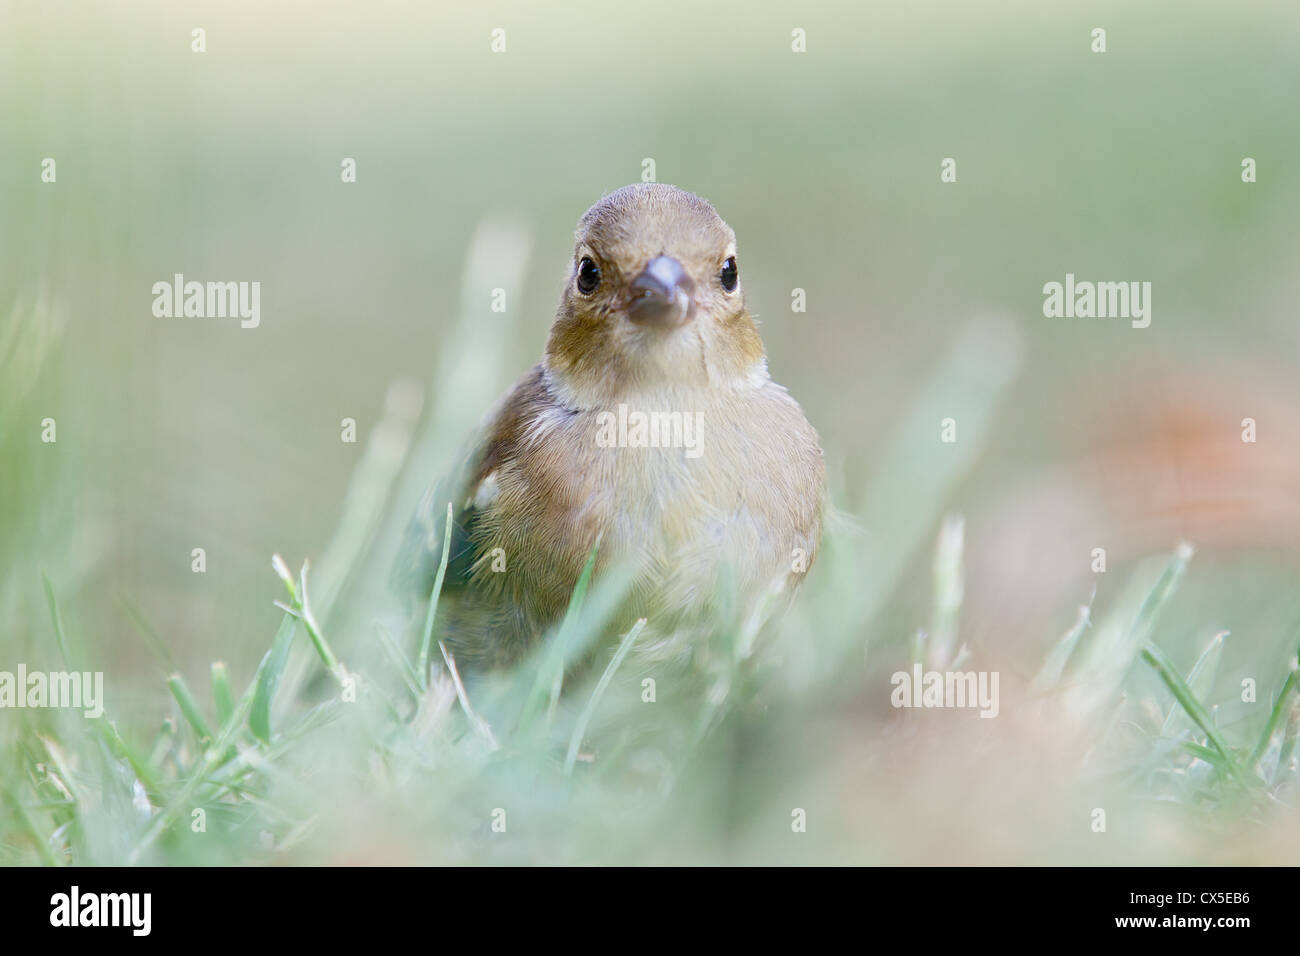 Young female chaffinch (Fringilla coelebs), Sussex, England. Stock Photo